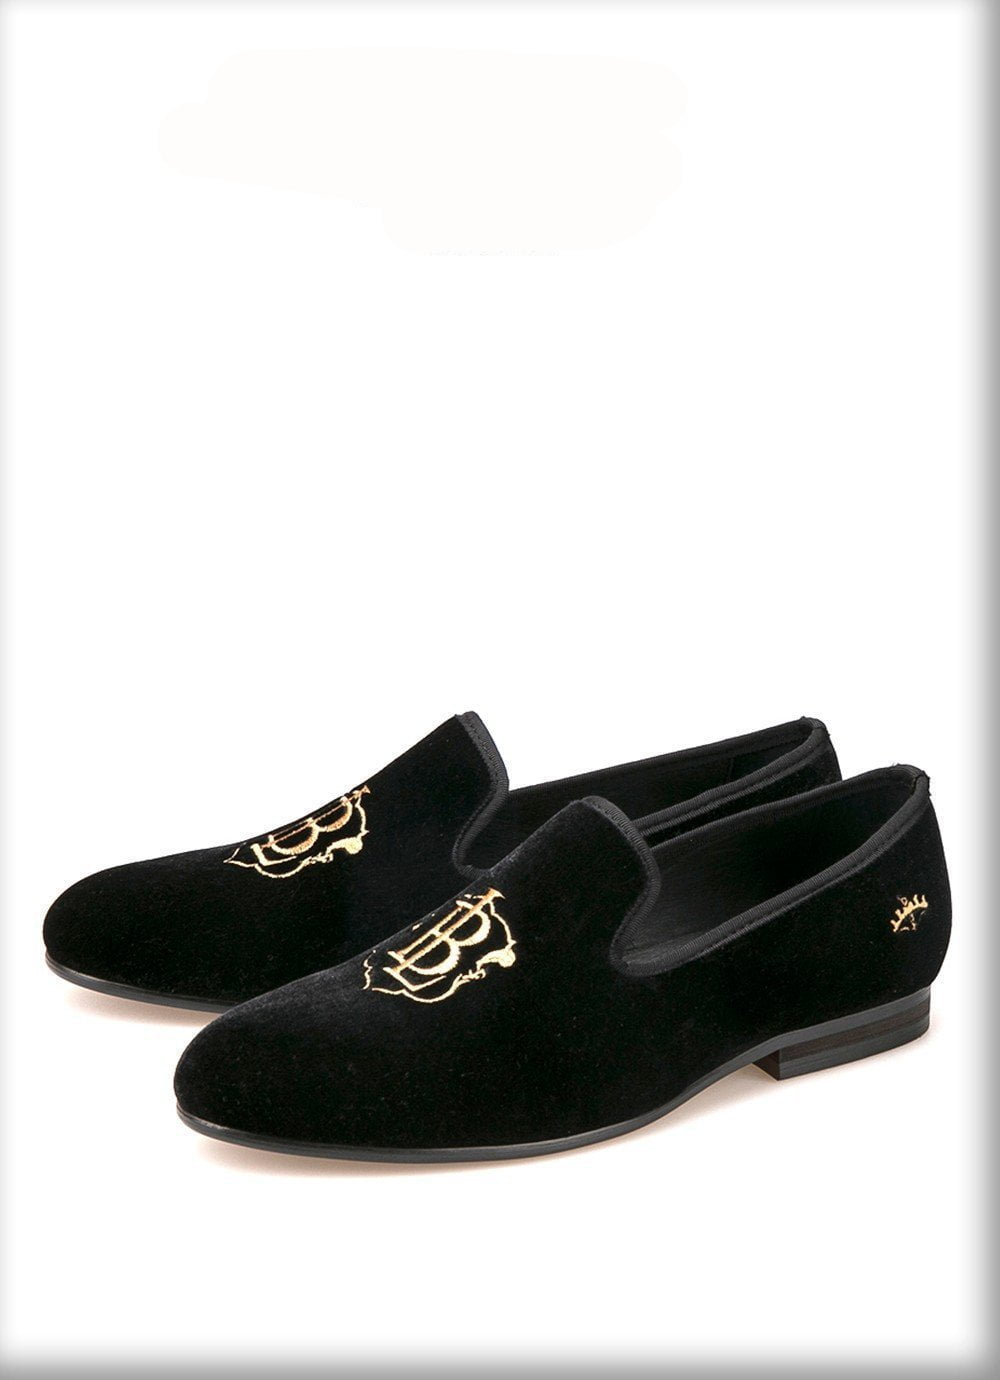 New style fashion men loafers gold embroidery handmade men velvet shoes party and wedding men's flat size-SLIPS-SheSimplyShops